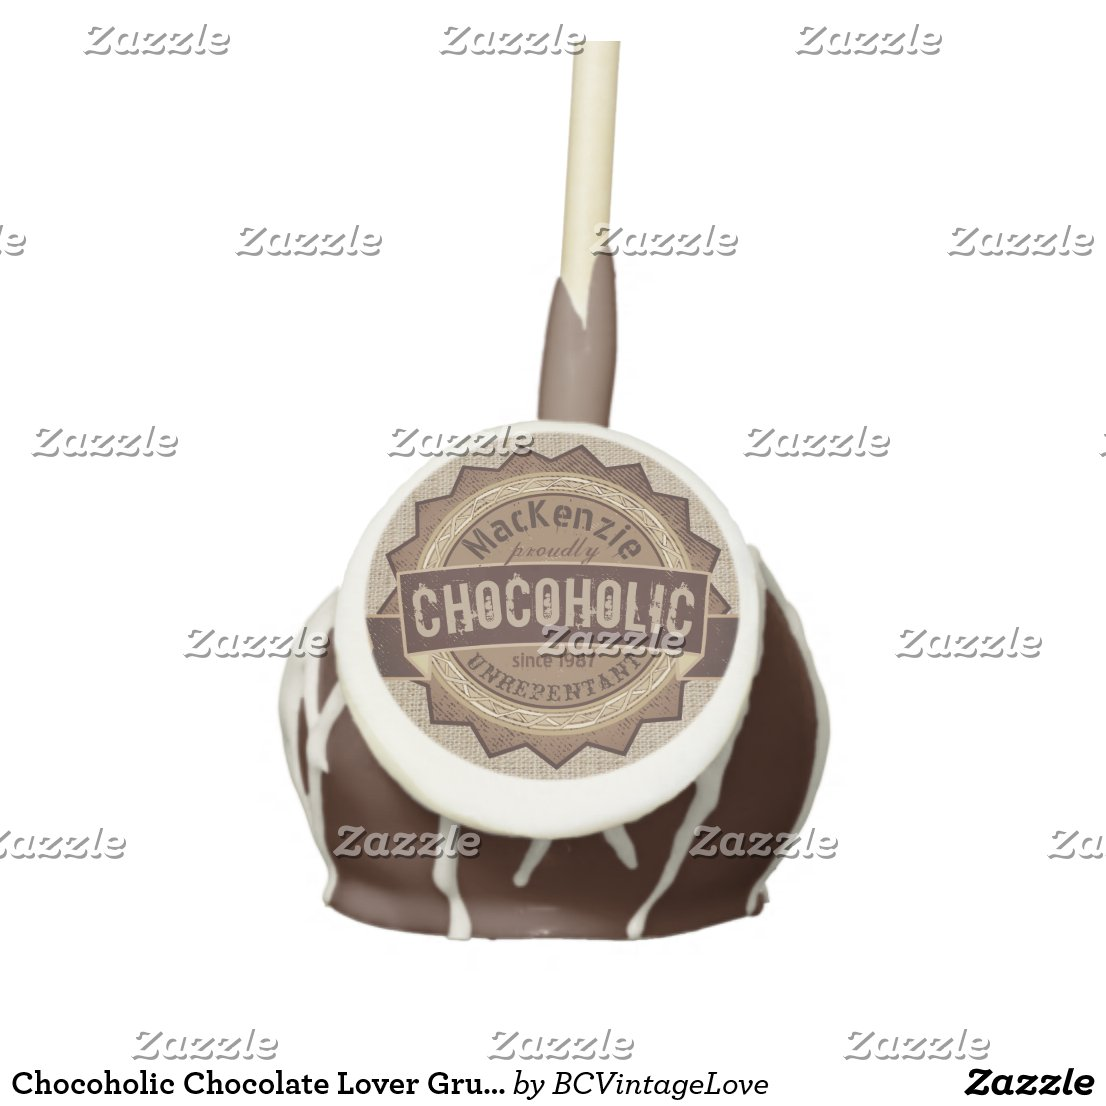 Chocoholic Chocolate Lover Grunge Badge Brown Logo Cake Pops